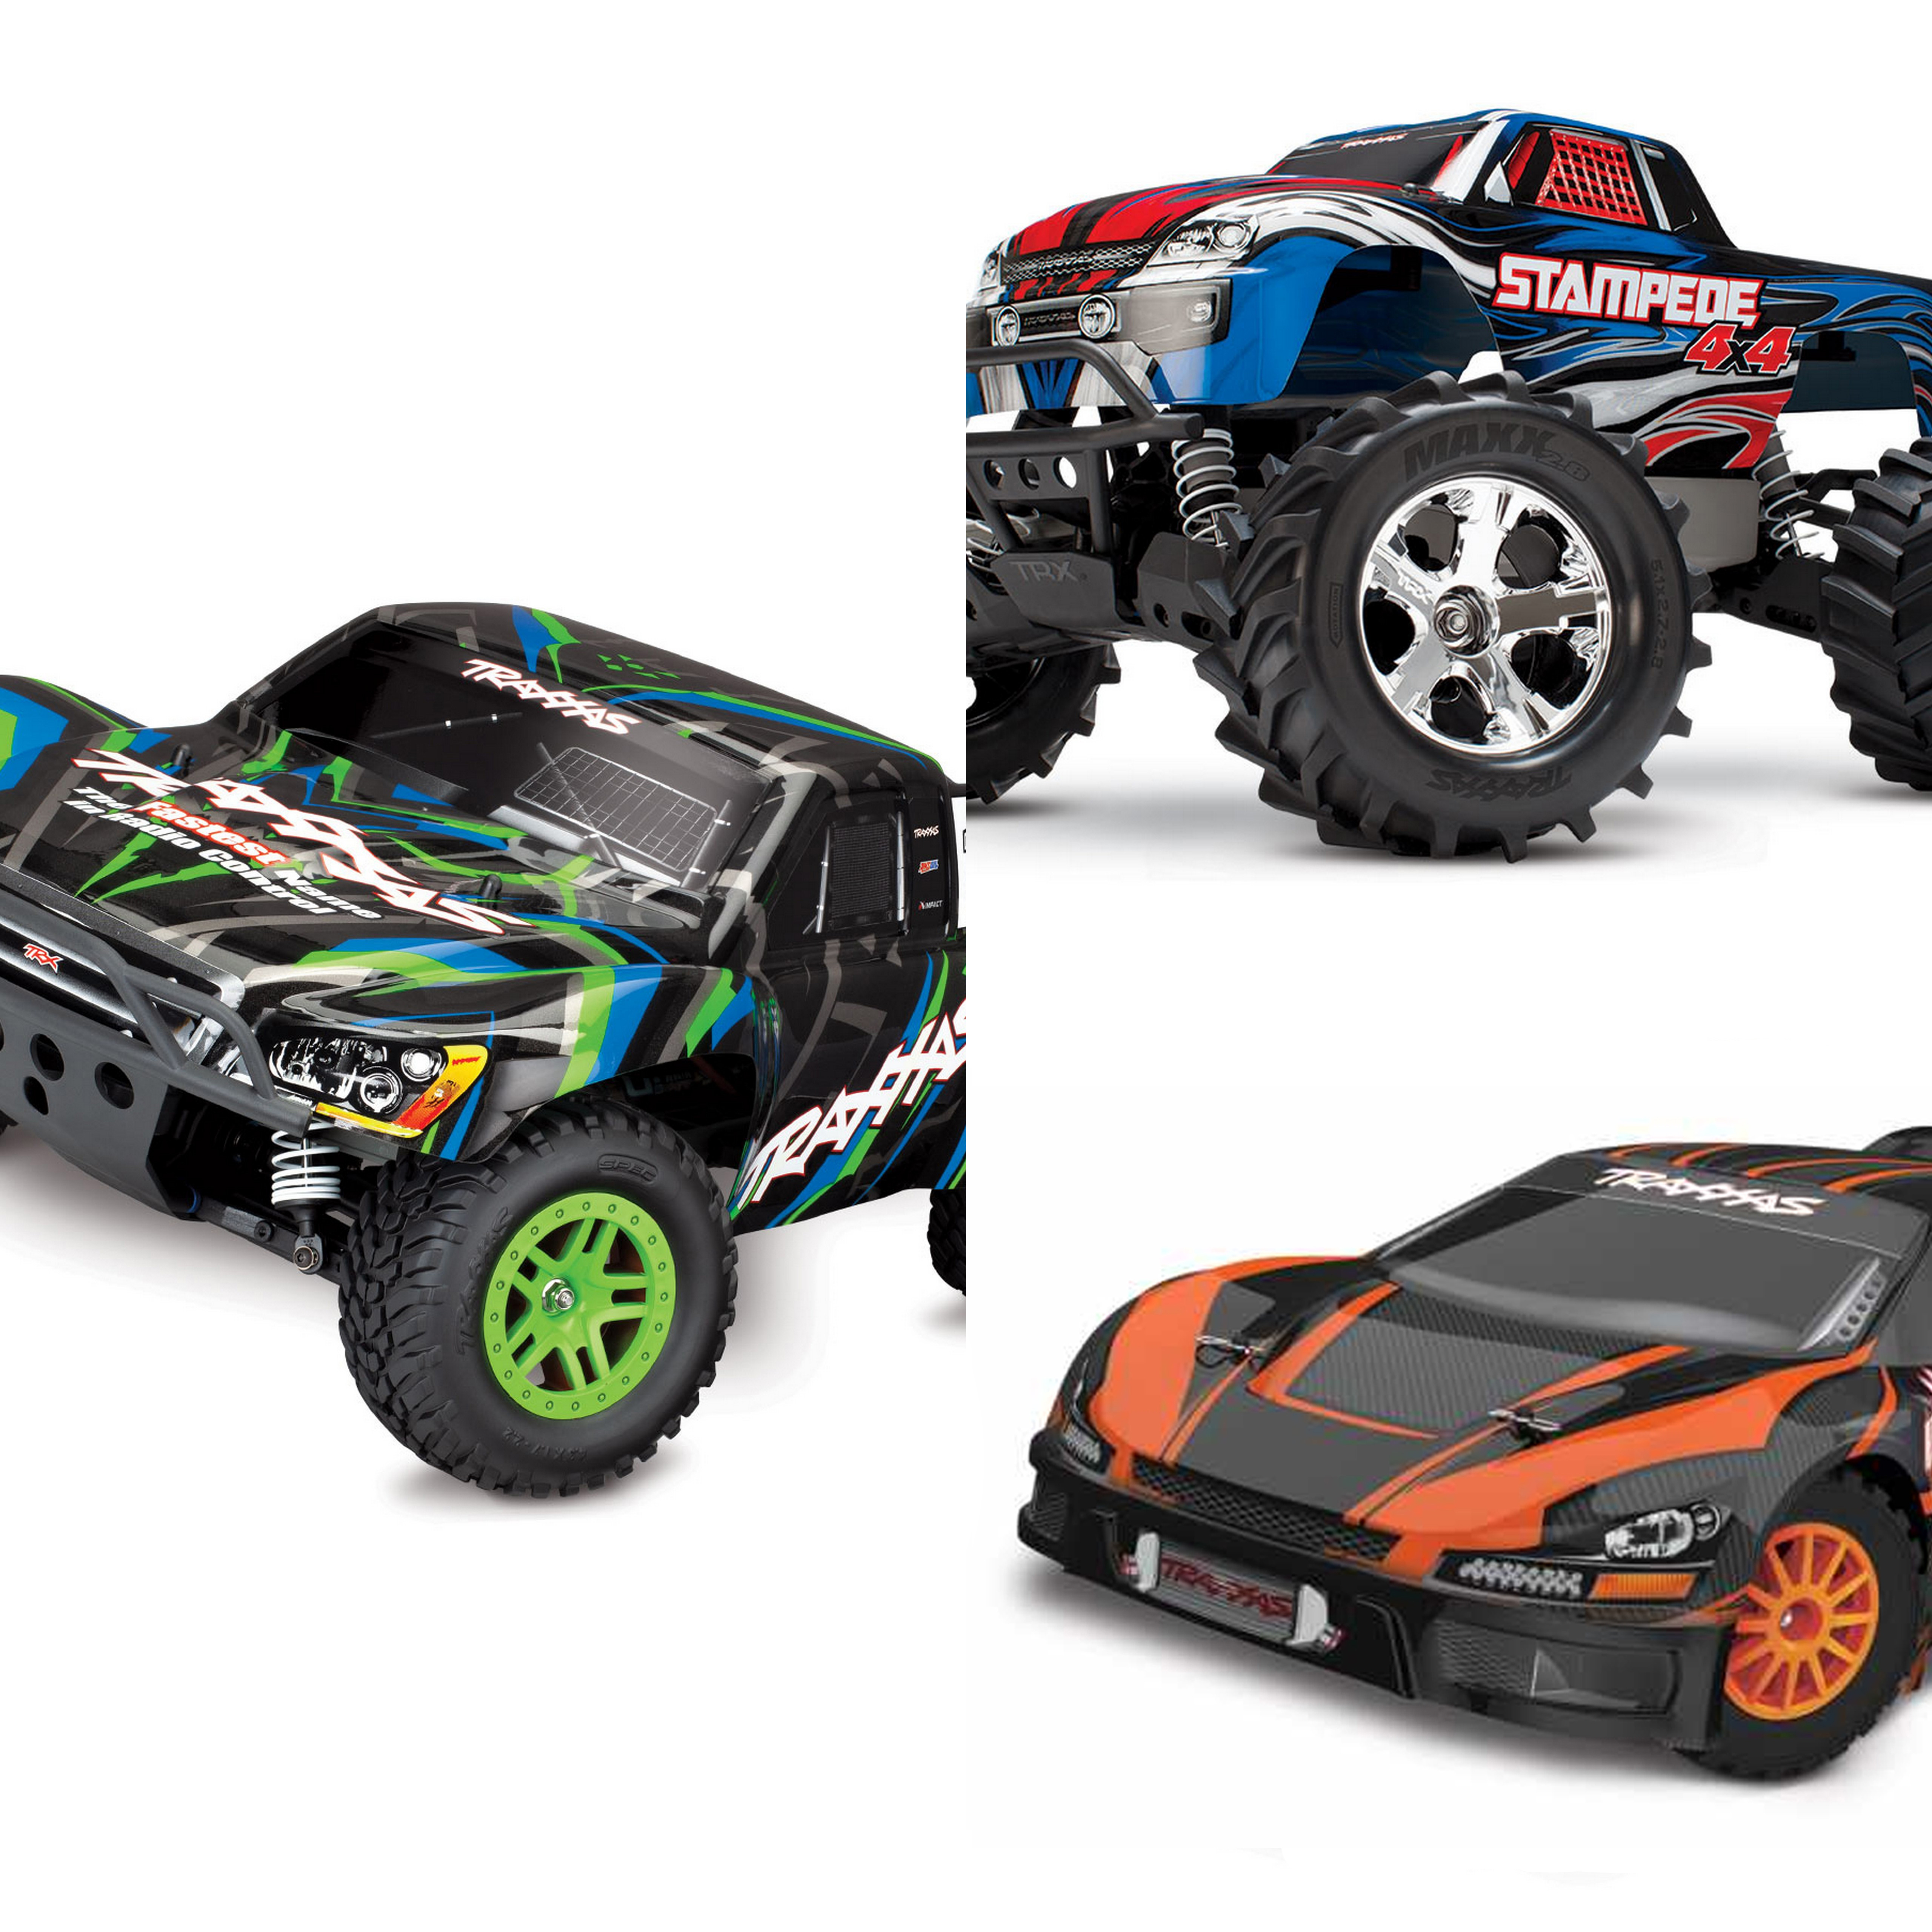 Traxxas 1/10 4x4 Slash / Stampede / Rally